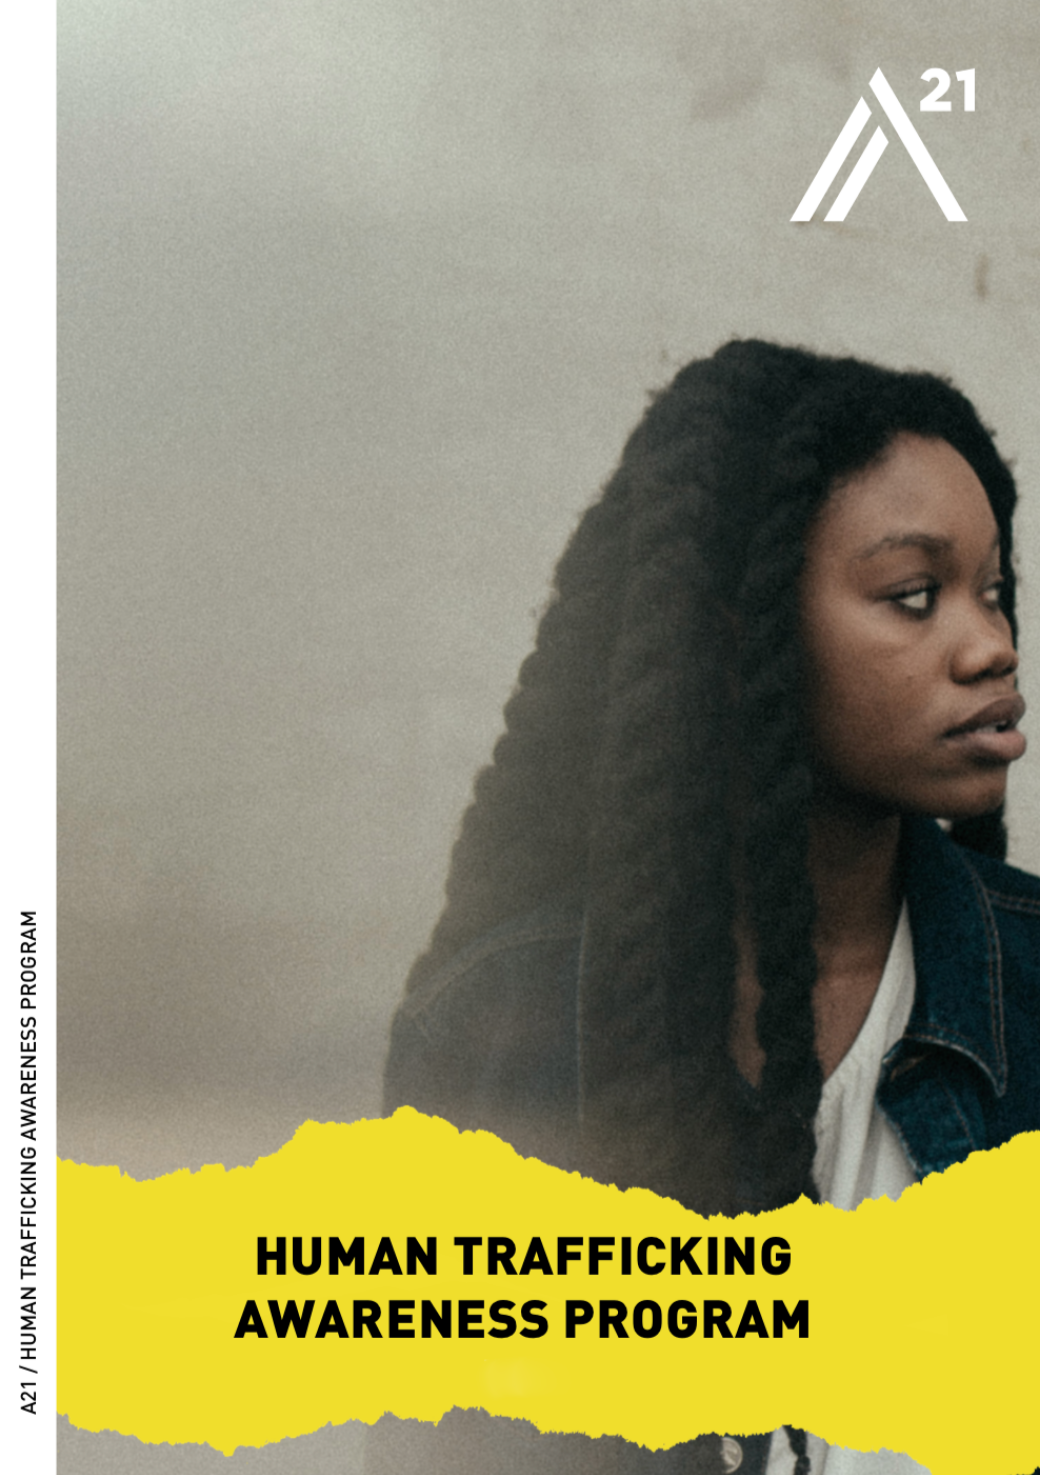 Human Trafficking Awareness Program